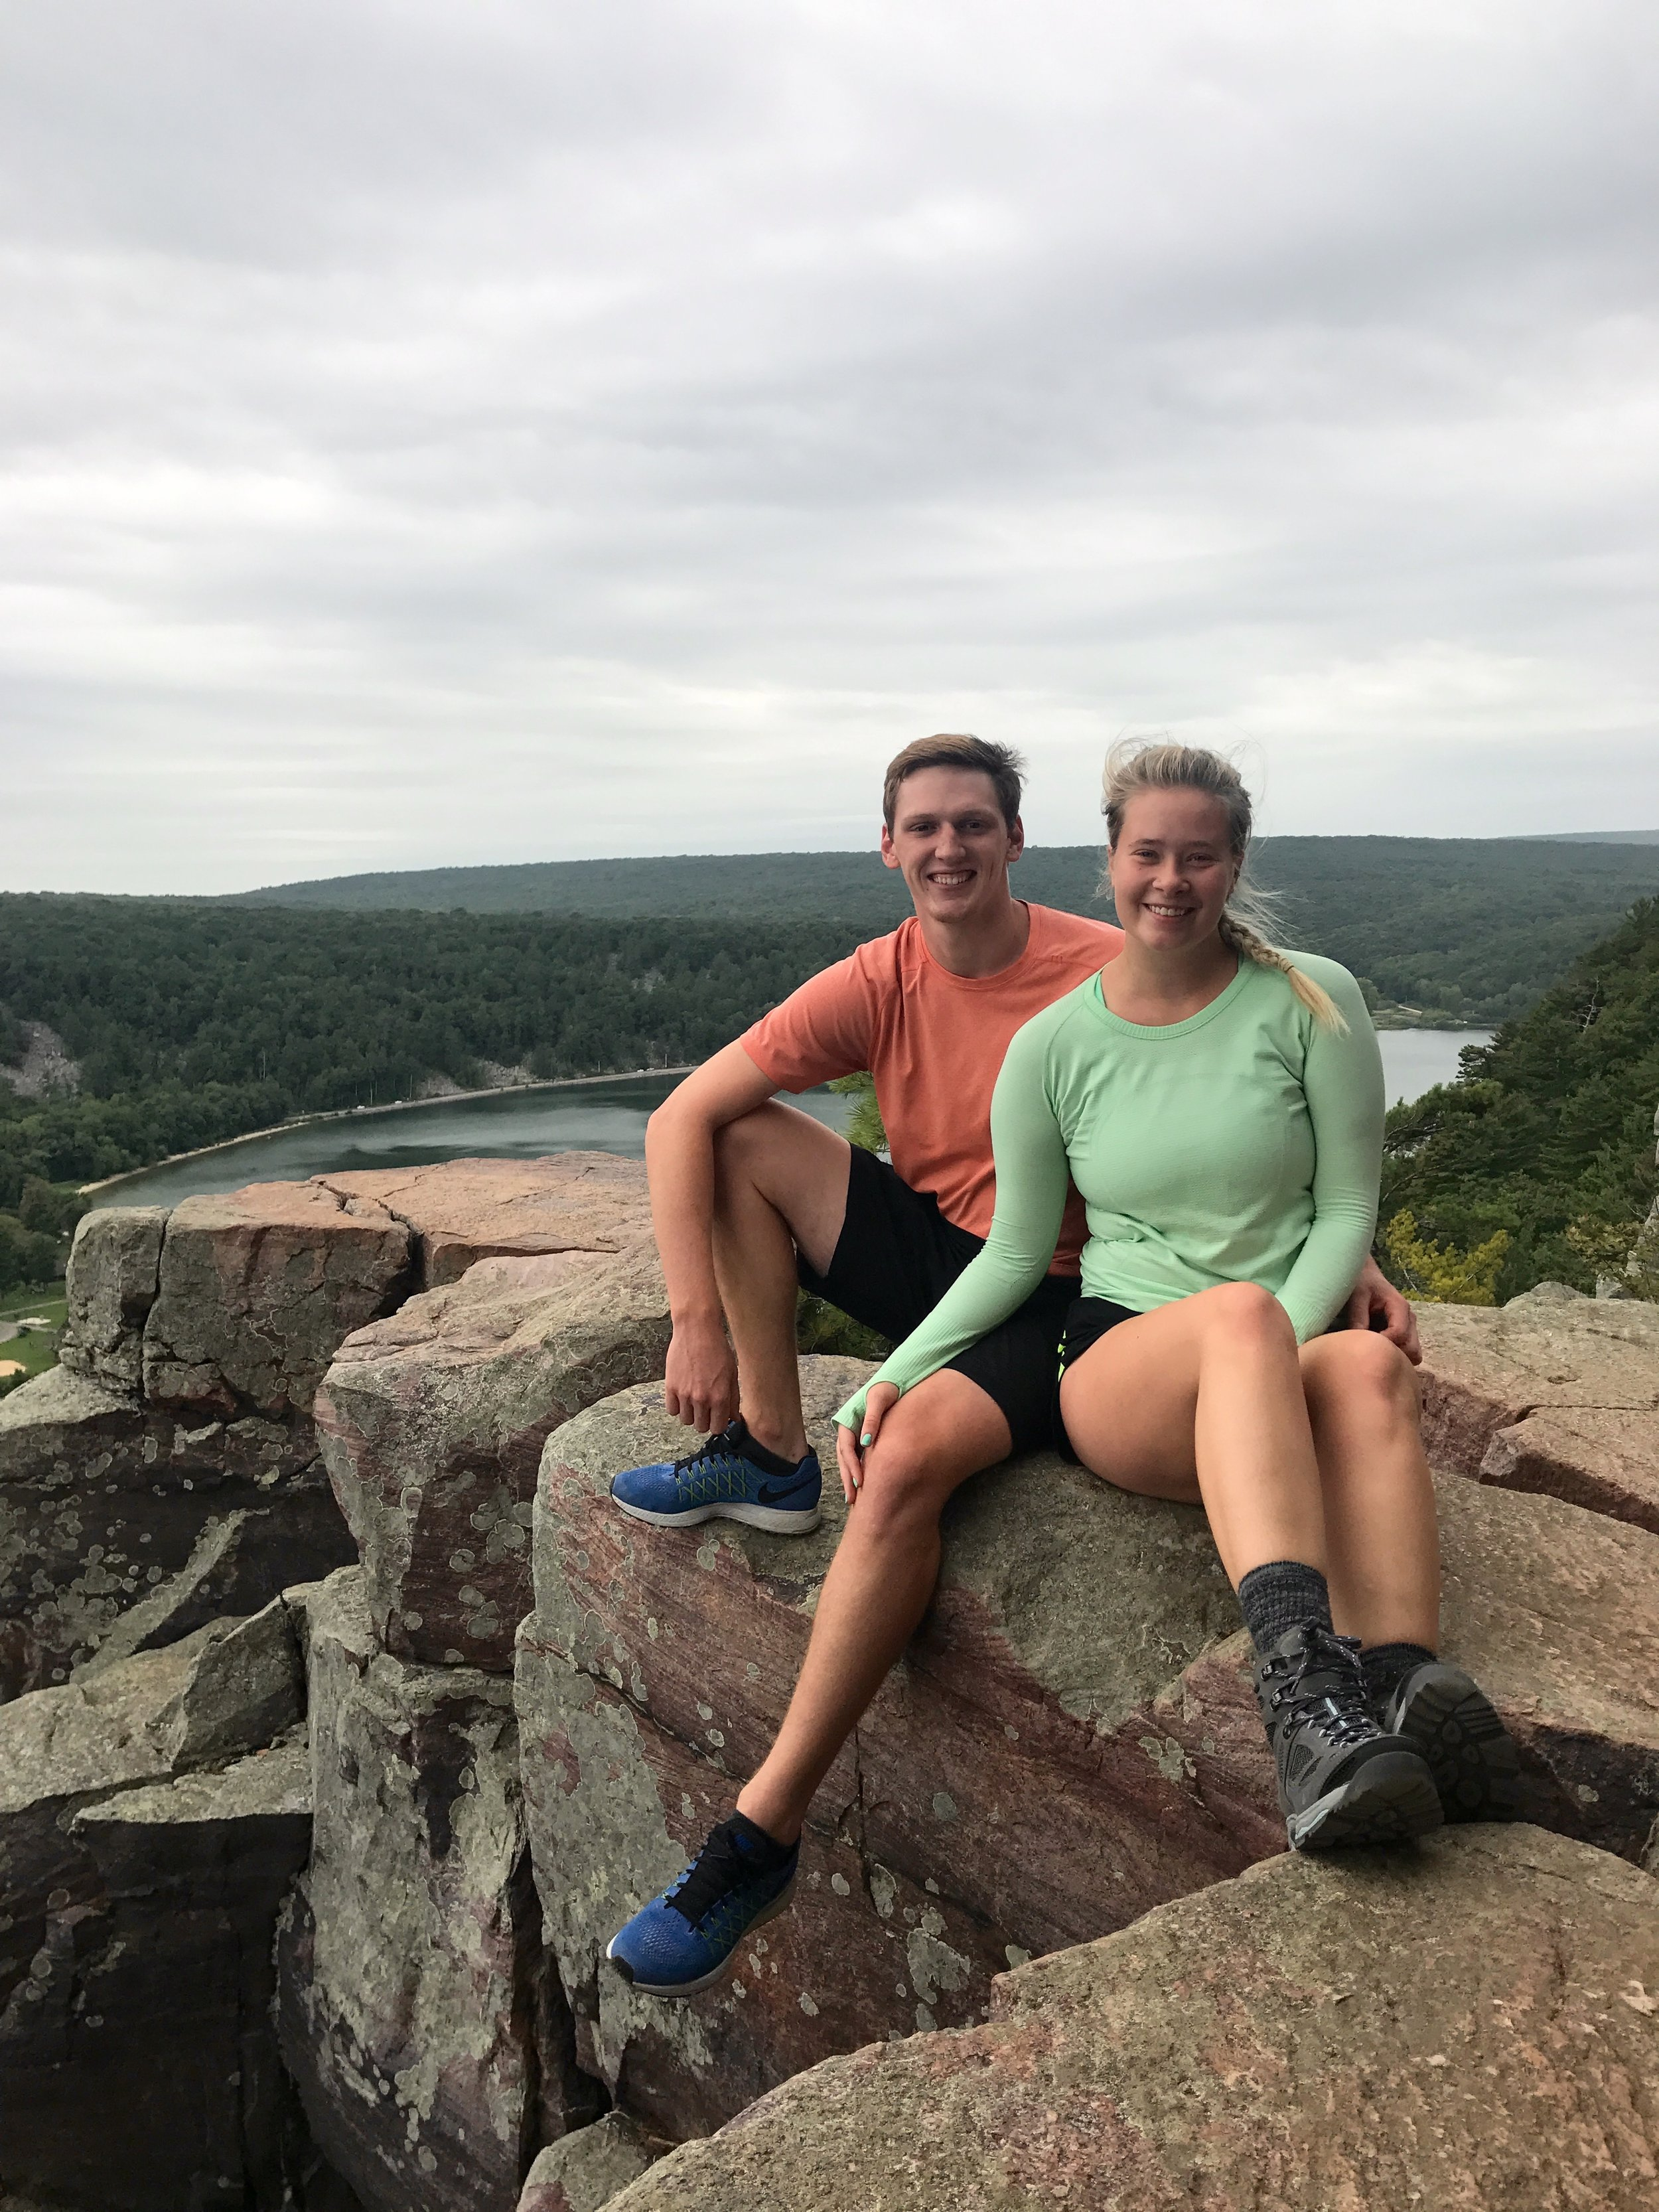 Claire and her boyfriend, Colin, hiking at Devil's Lake over Labor Day weekend.